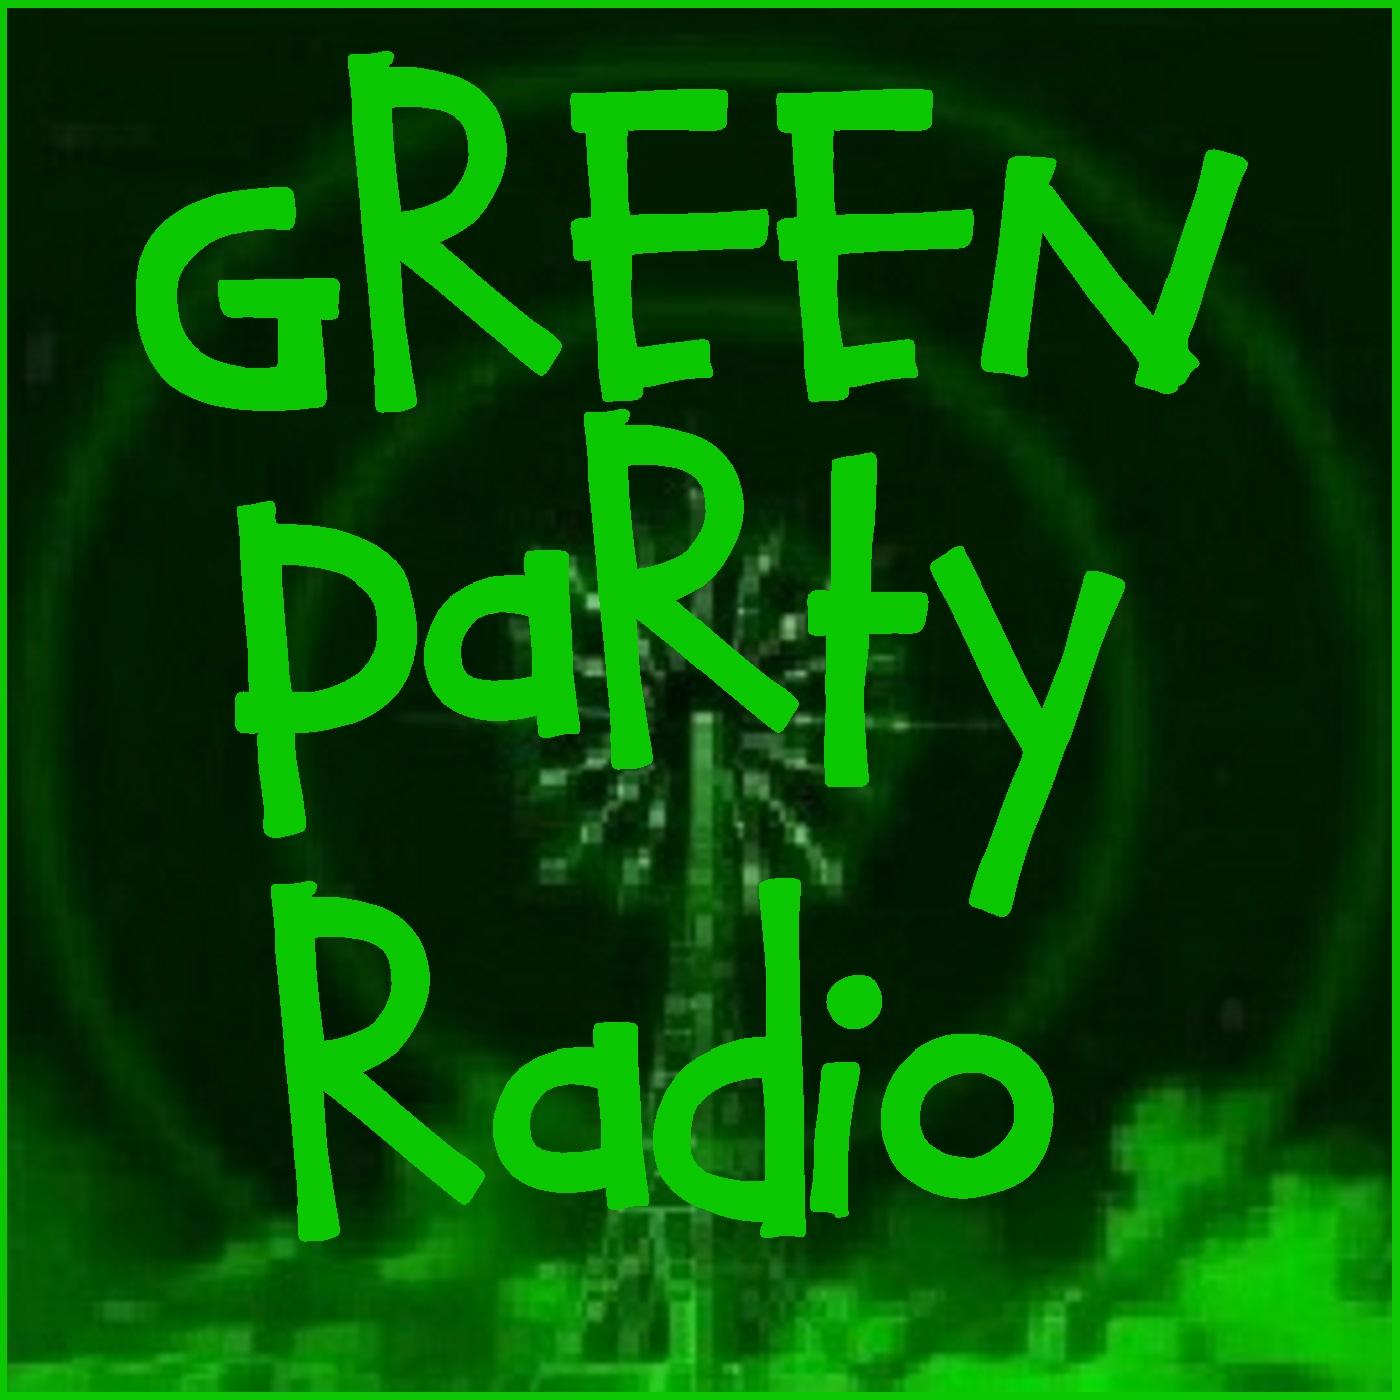 Best Of Green Party Radio - January 15, 2017 - Green Party Radio (podcast)